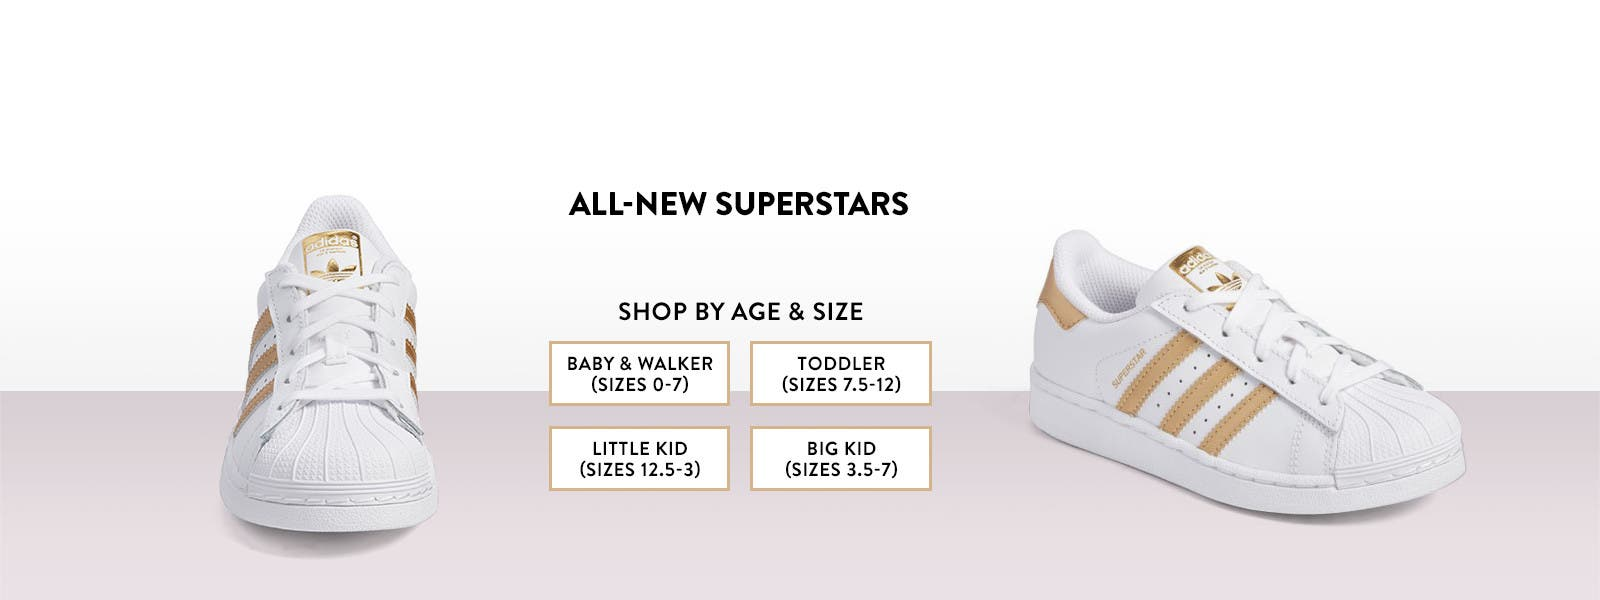 All-new Superstars from Adidas.